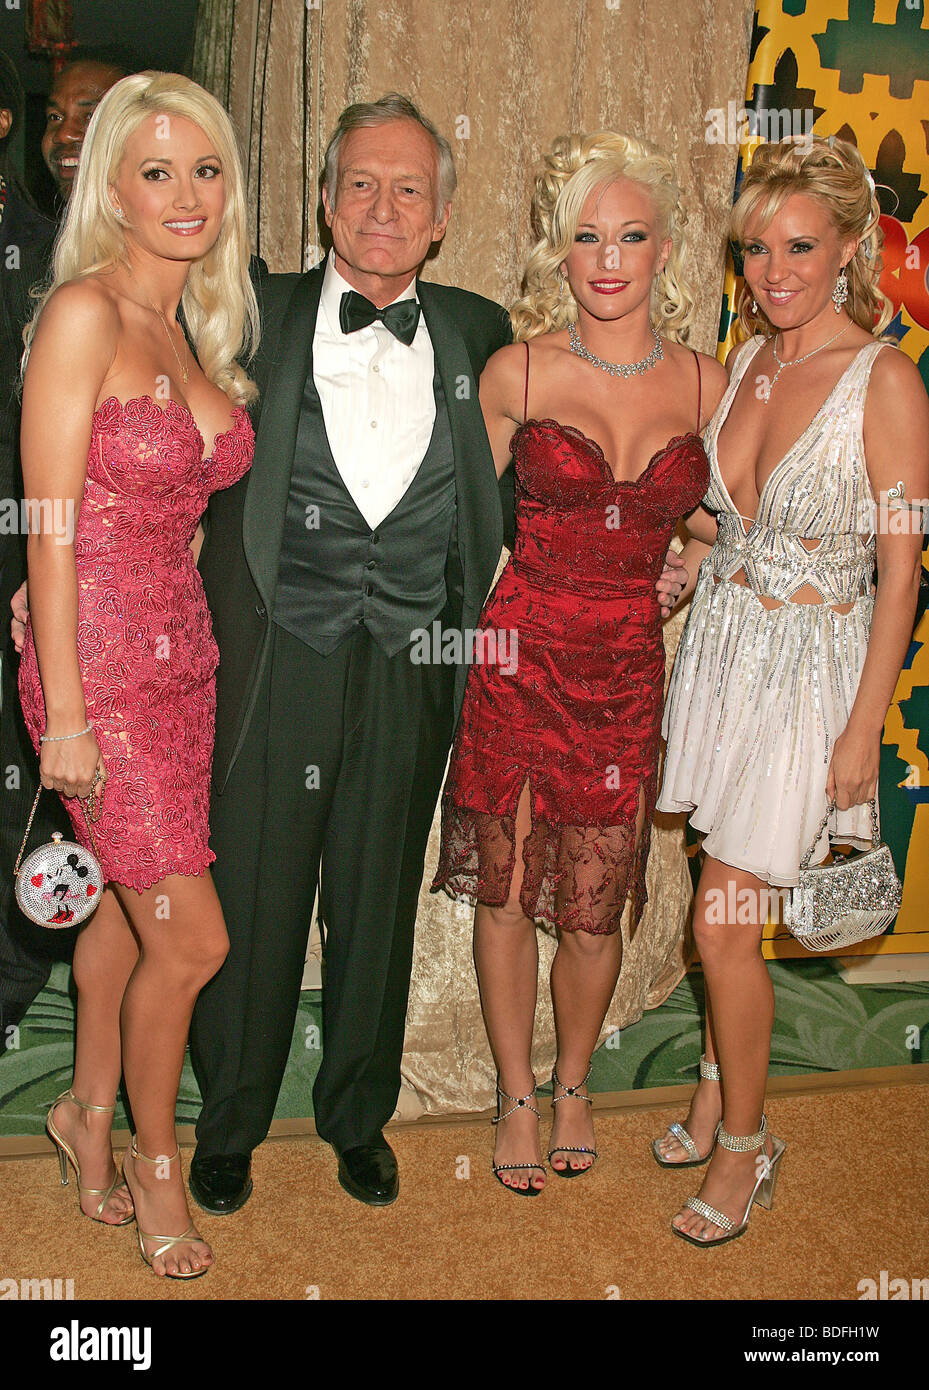 HUGH HEFNER US publisher with some of the Playmates in 2005 - Stock Image